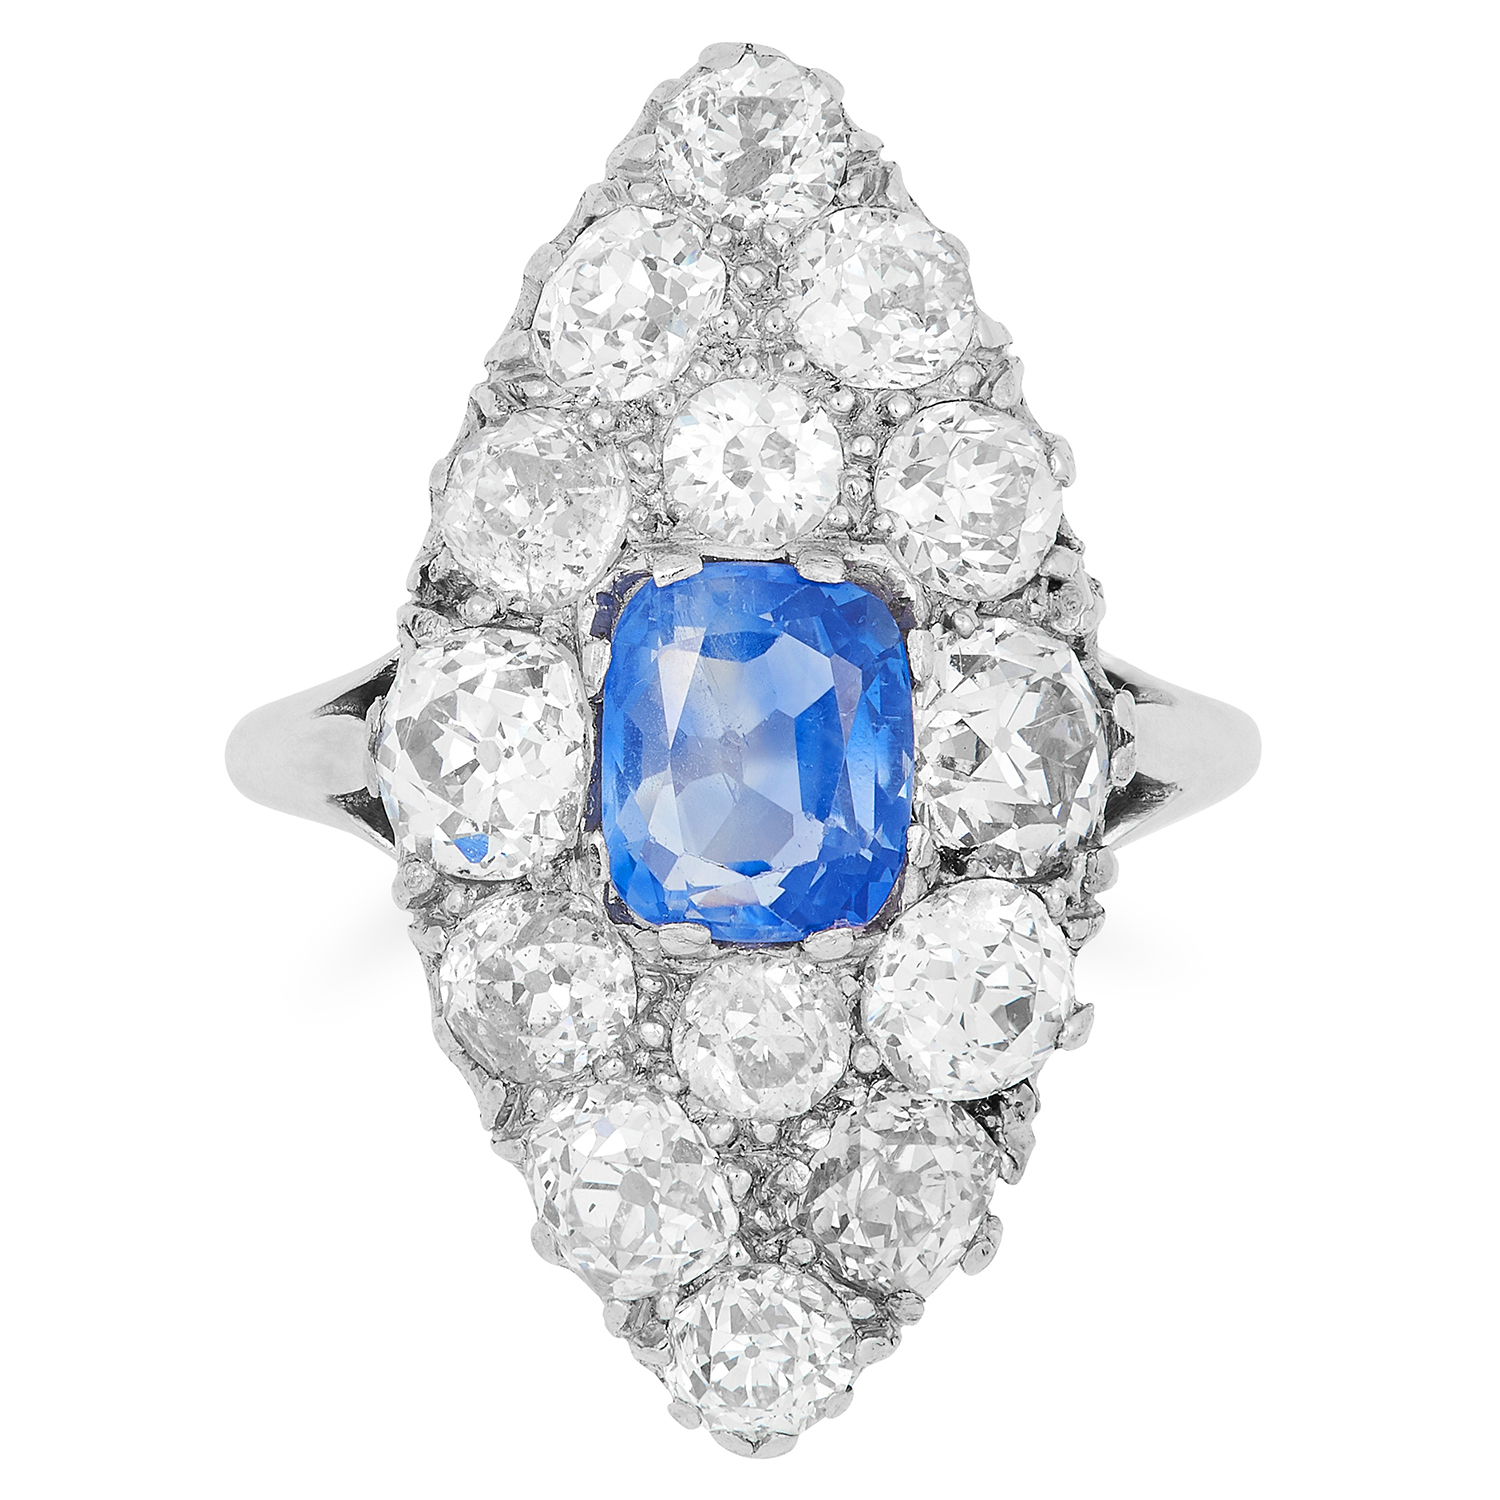 1.30 CARAT SAPPHIRE AND DIAMOND RING in marquise face is set with a cushion cut sapphire of